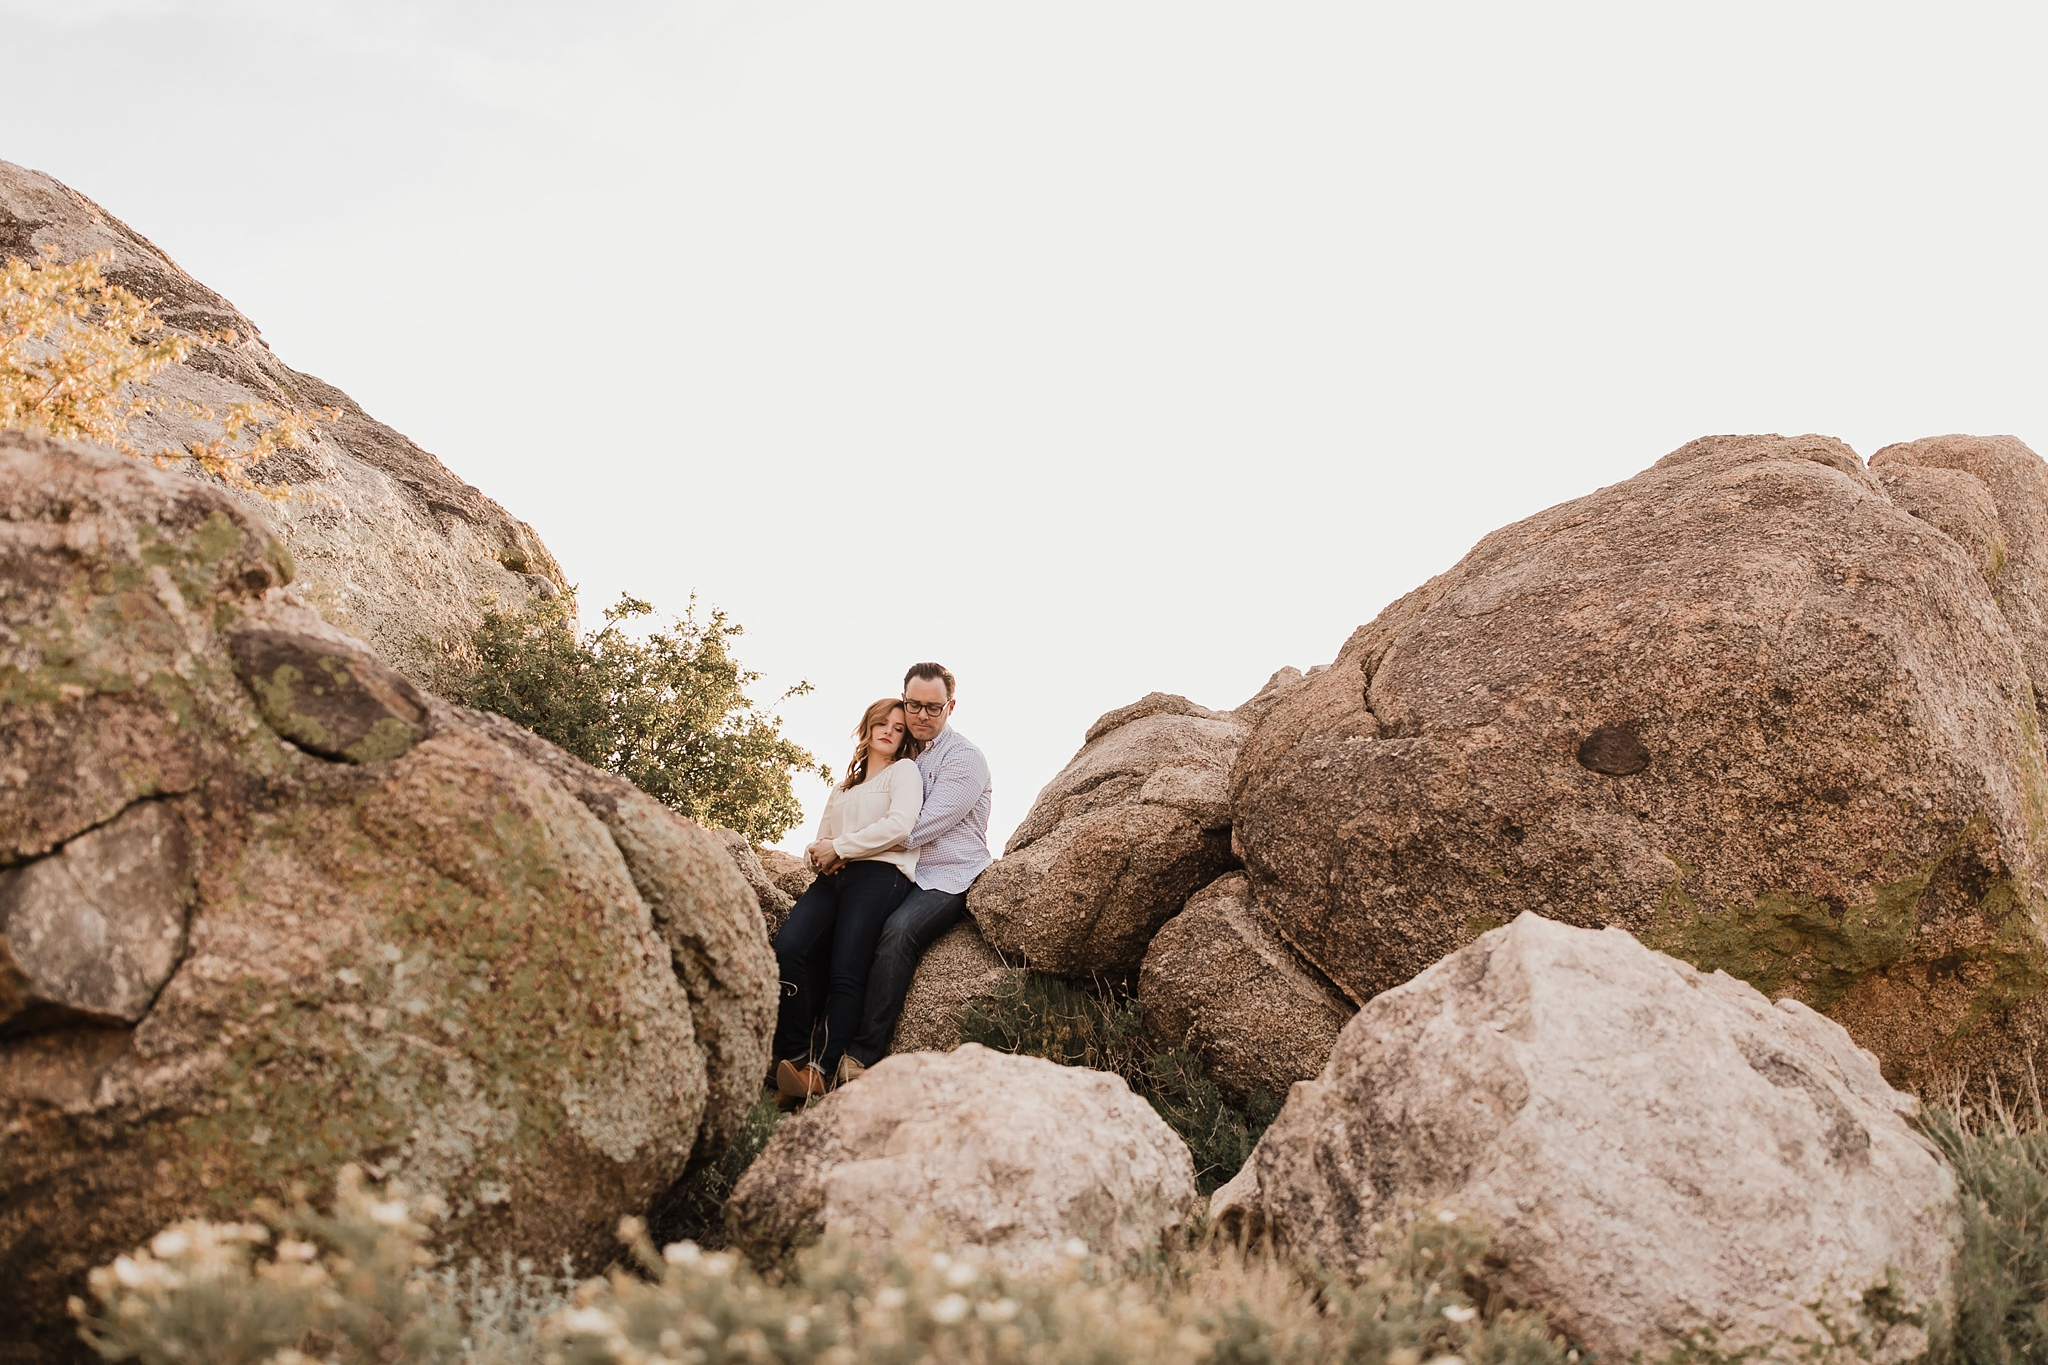 Alicia+lucia+photography+-+albuquerque+wedding+photographer+-+santa+fe+wedding+photography+-+new+mexico+wedding+photographer+-+new+mexico+wedding+-+new+mexico+engagement+-+engagement+photographer+-+mountain+engagement+-+desert+engagement_0022.jpg